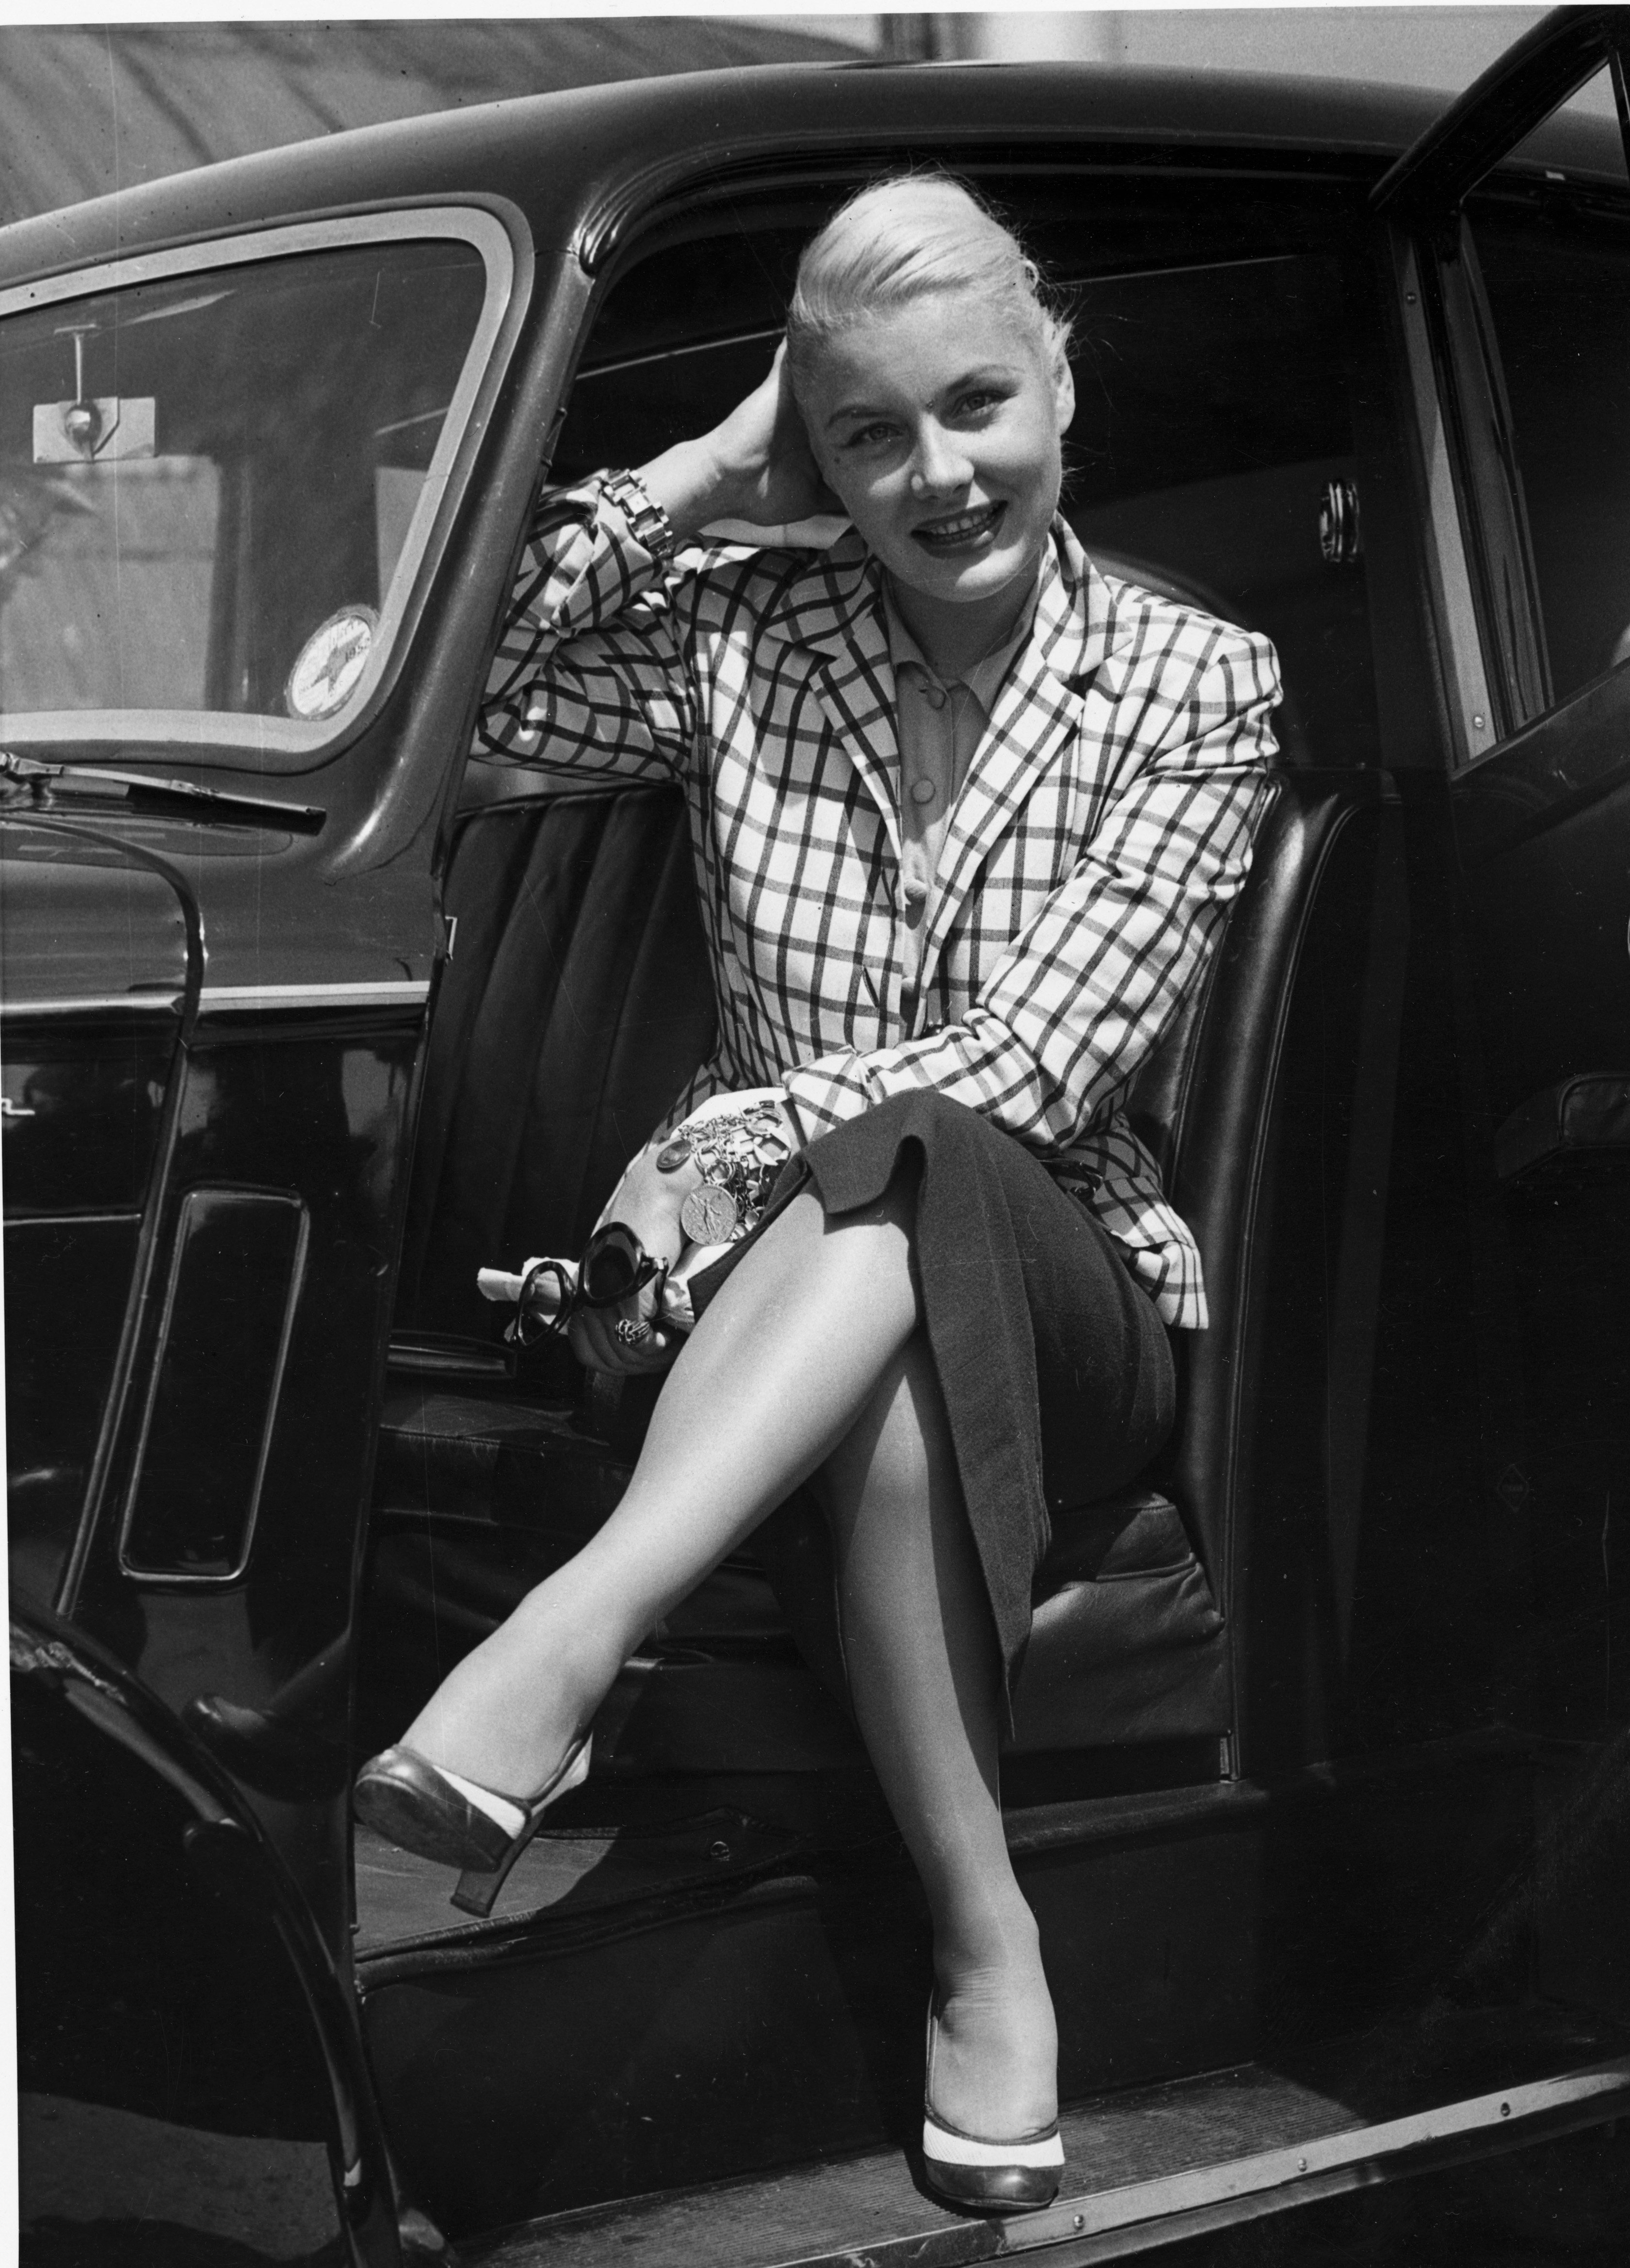 Barbara Payton posing in a car, July 1952. | Photo: Getty Images